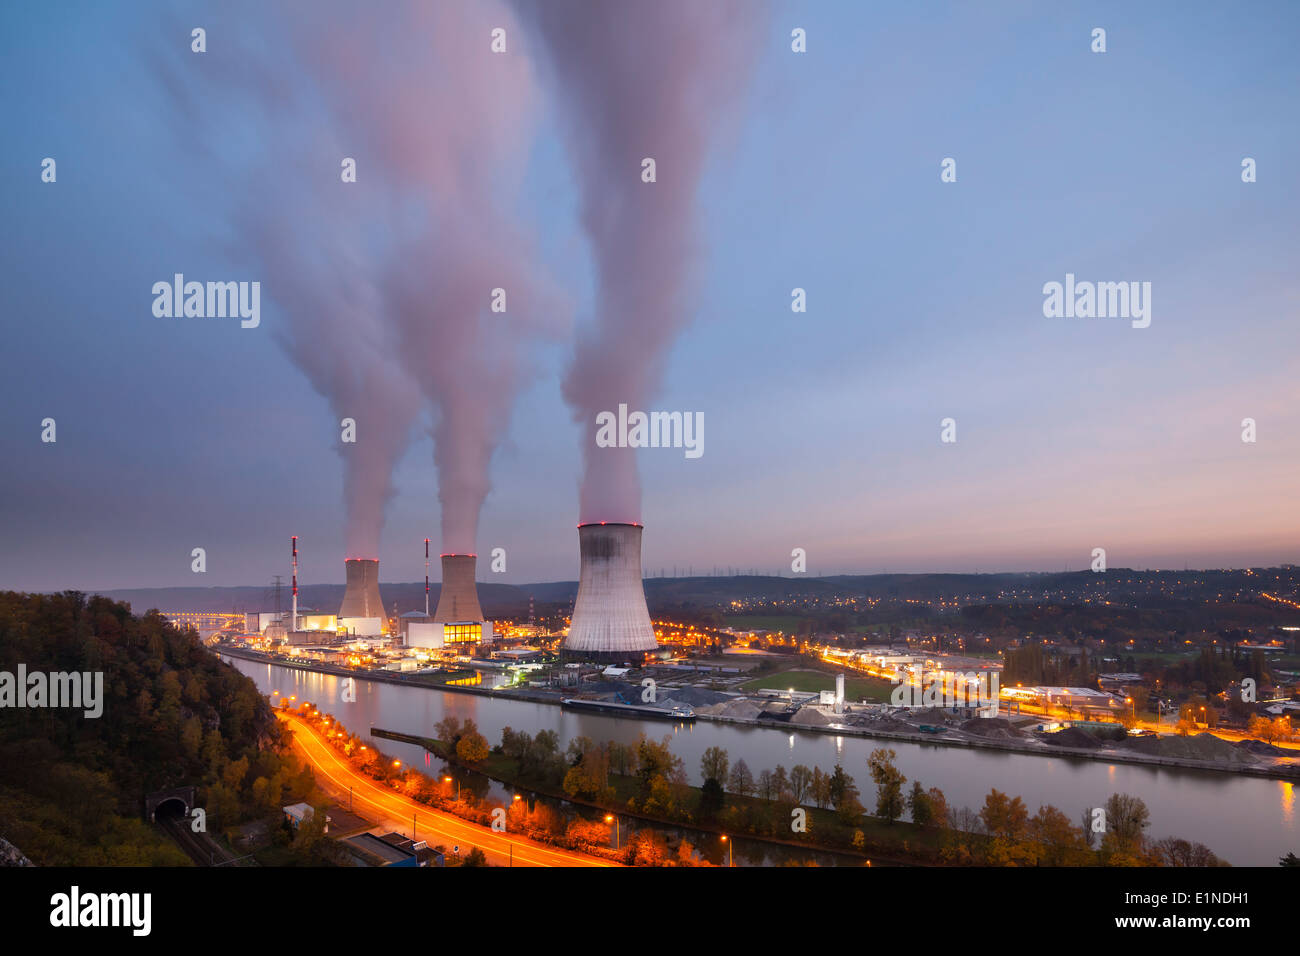 A large nuclear power station by a river at dusk - Stock Image